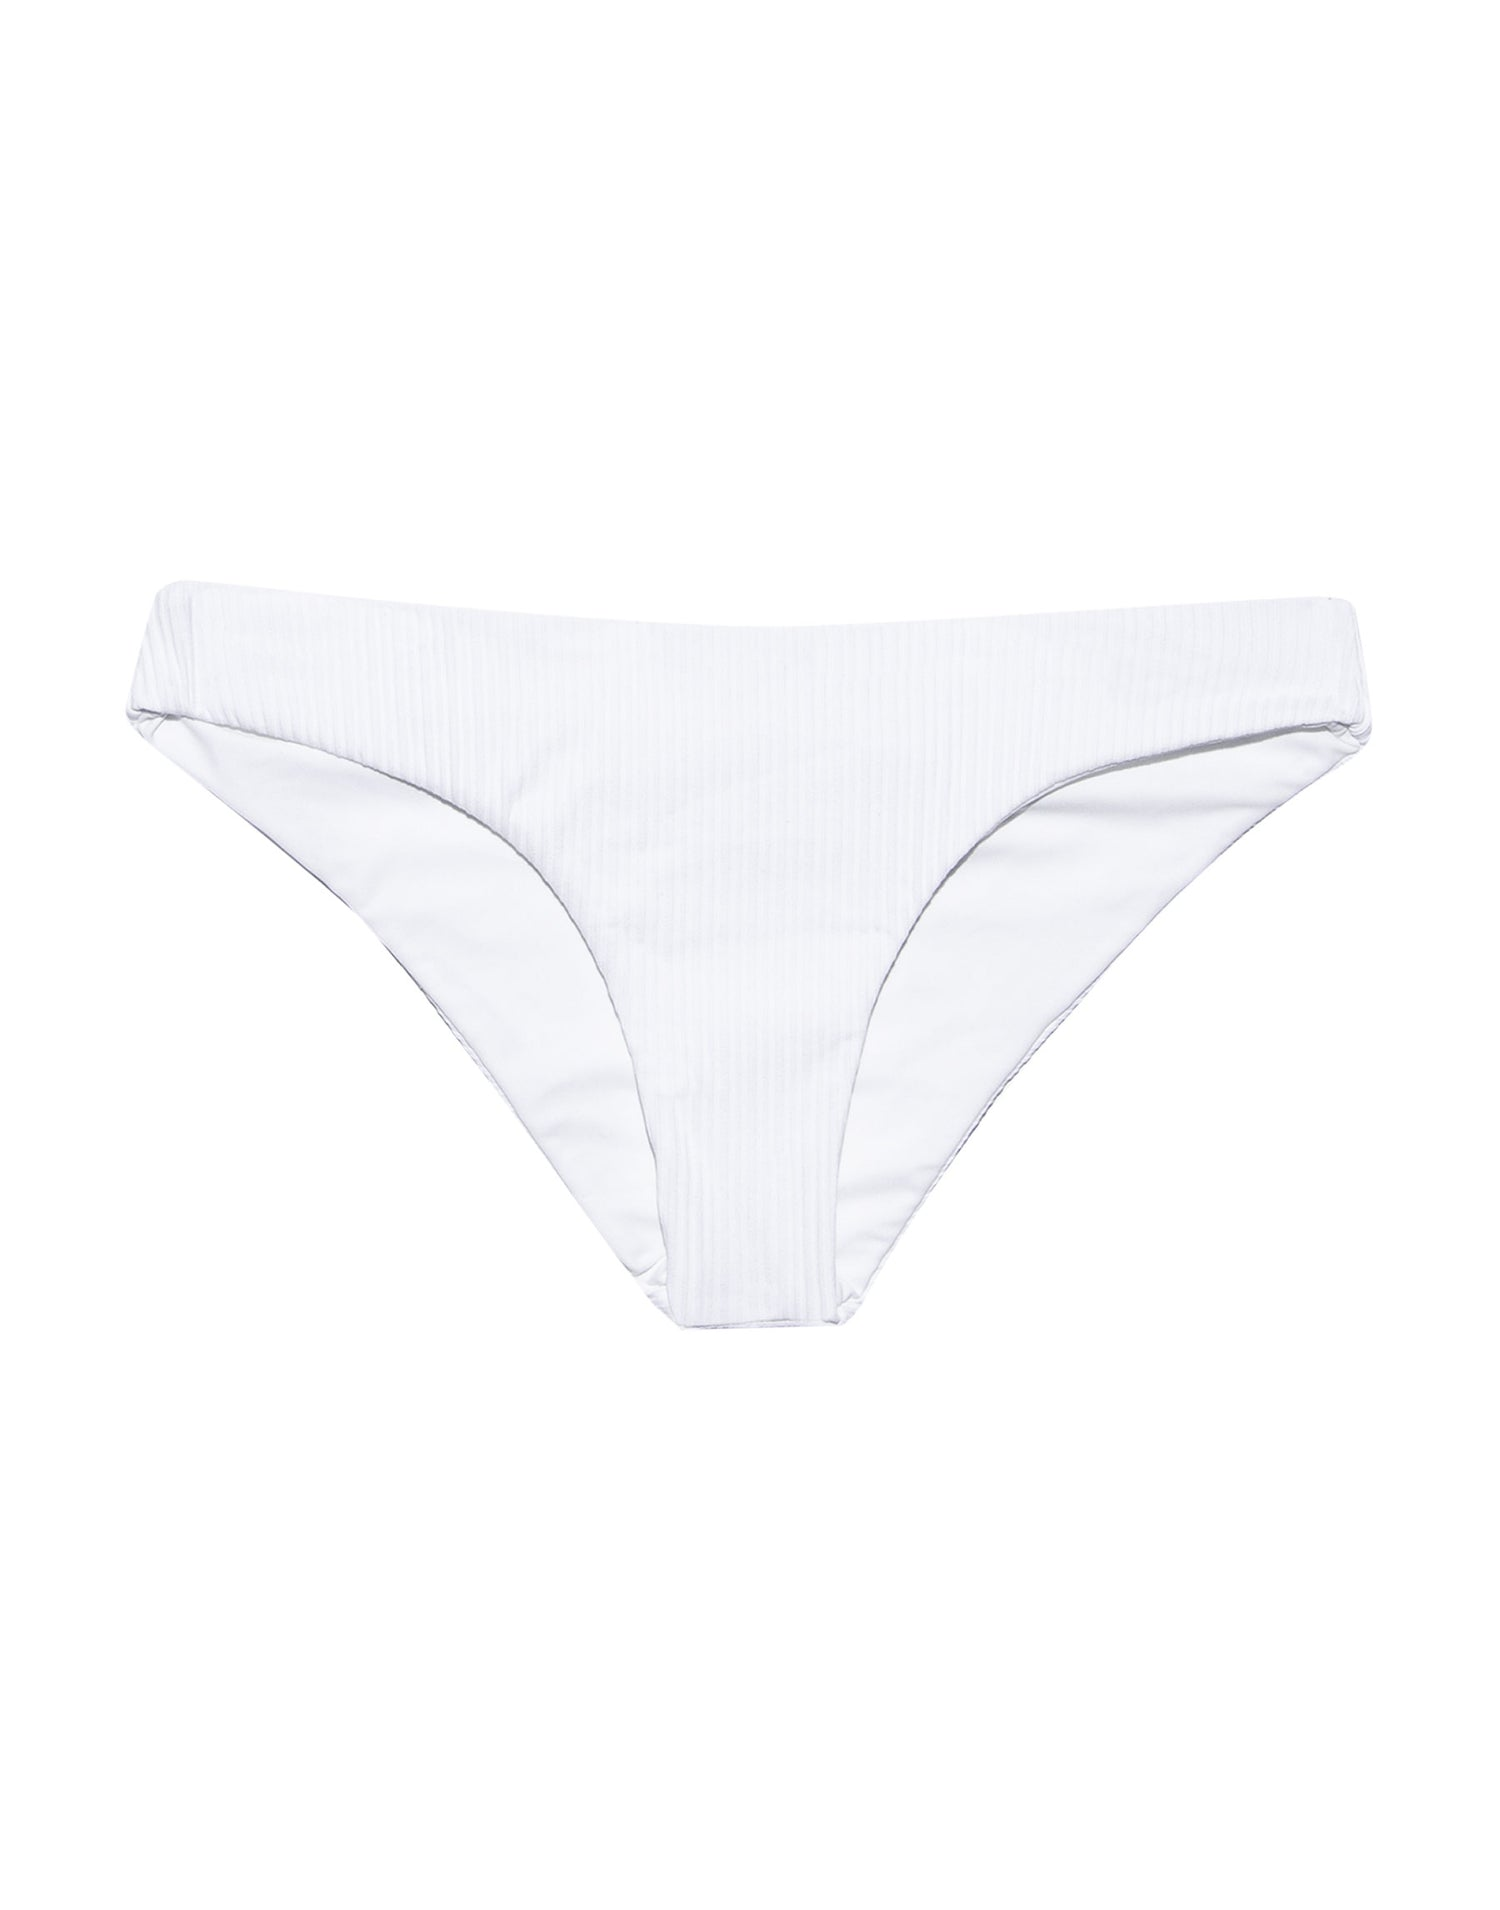 Stephanie Midi Bikini Bottom in White Rib - product view